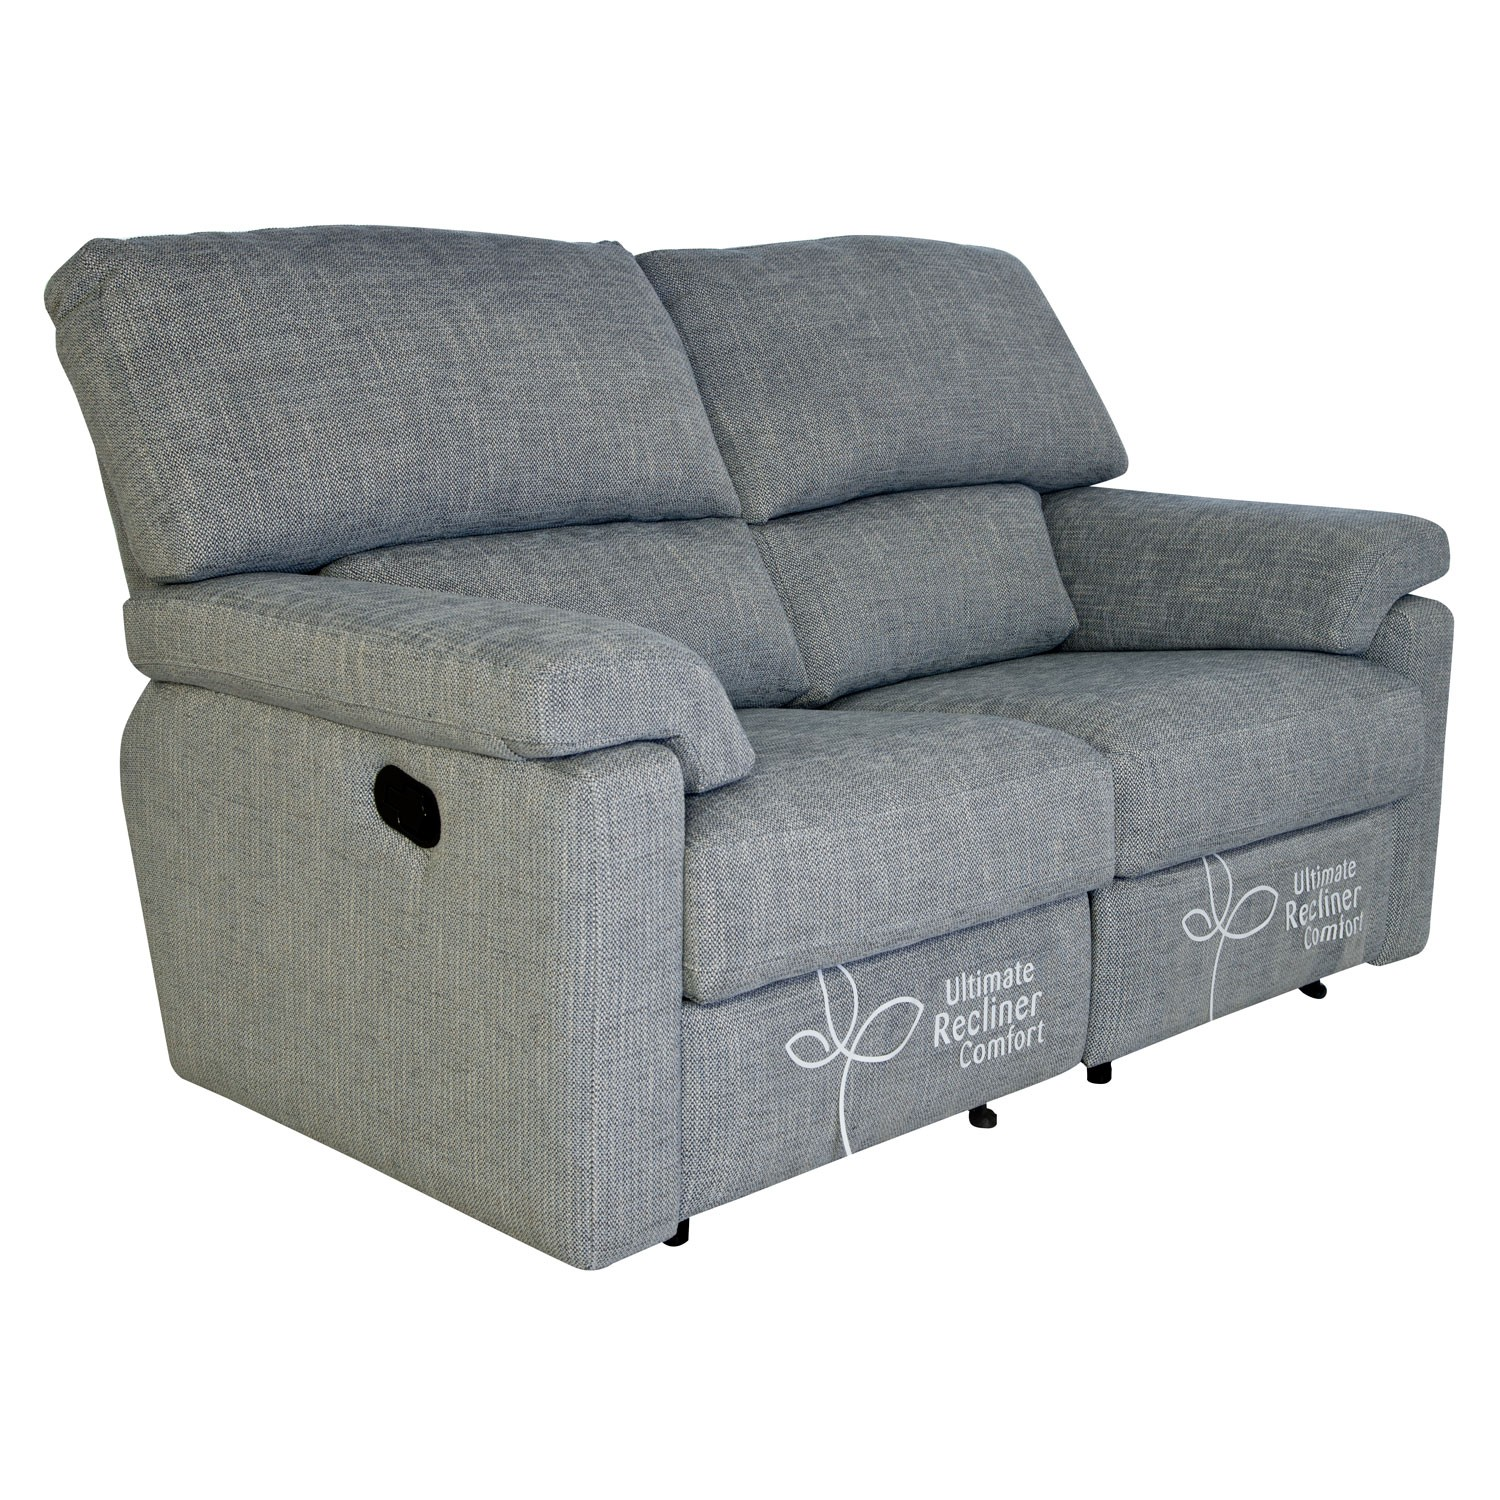 Casa Henry 2 Seater Double Manual Recliner Fabric Sofa Lee